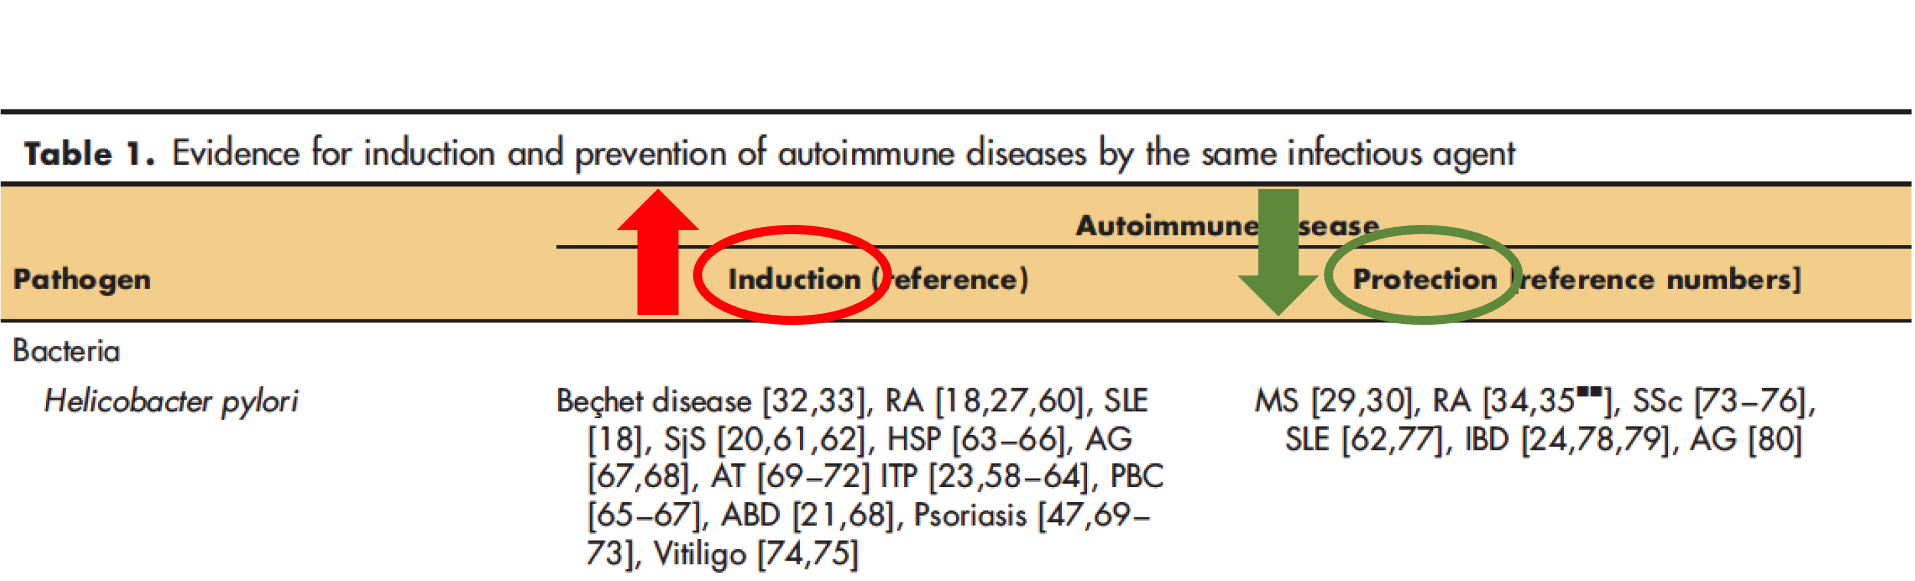 H. Pylori Induction and Protection for Autoimmune Disease